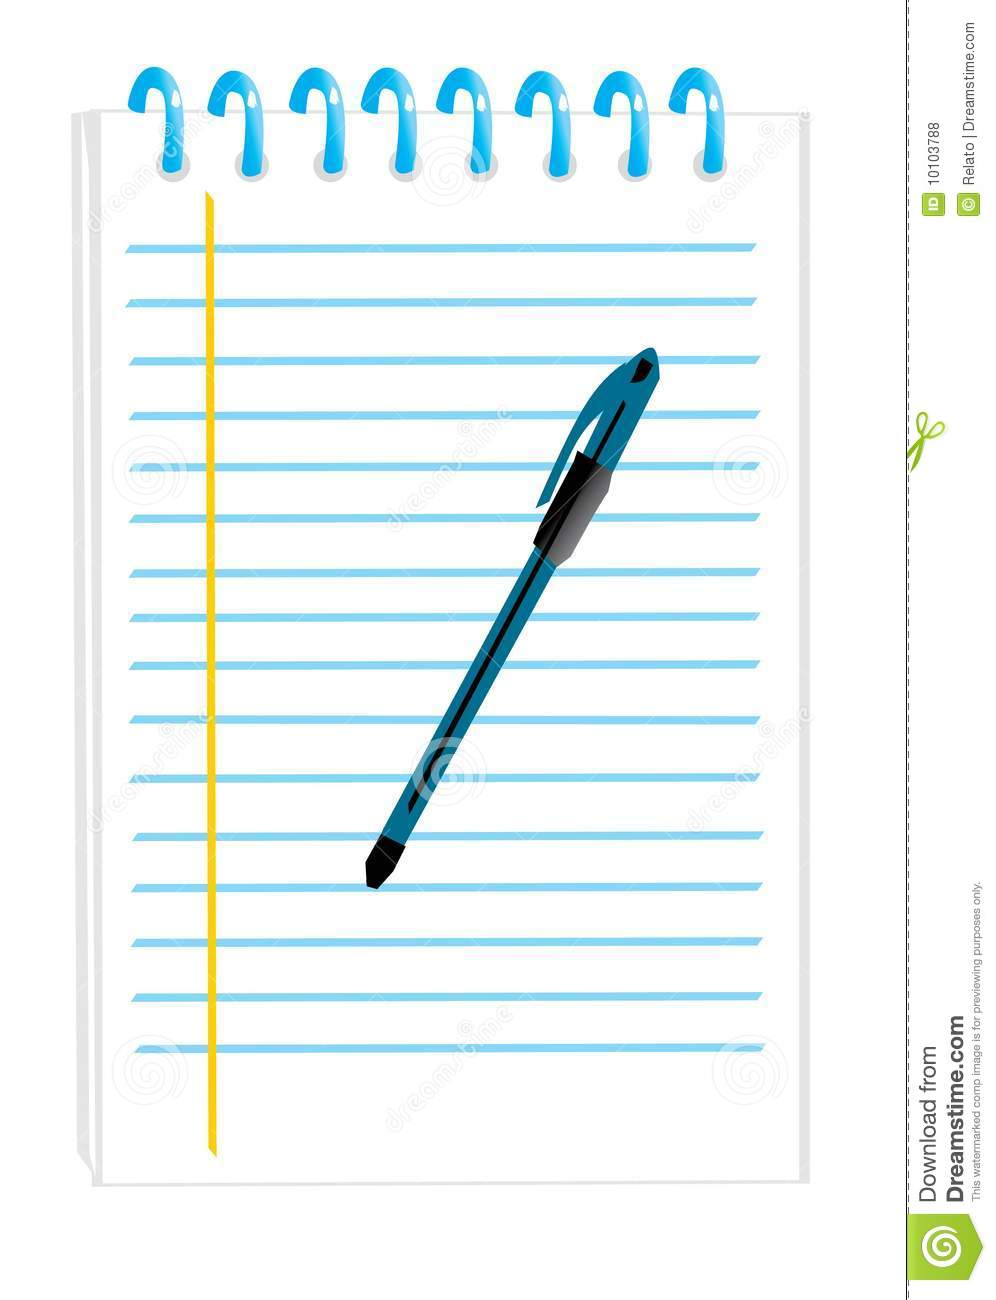 Points Inches Ruler Set Illustration Auto Electrical Wiring Diagram Acdelco 15071233 Plug Notepad With A Pen Royalty Free Stock Photos